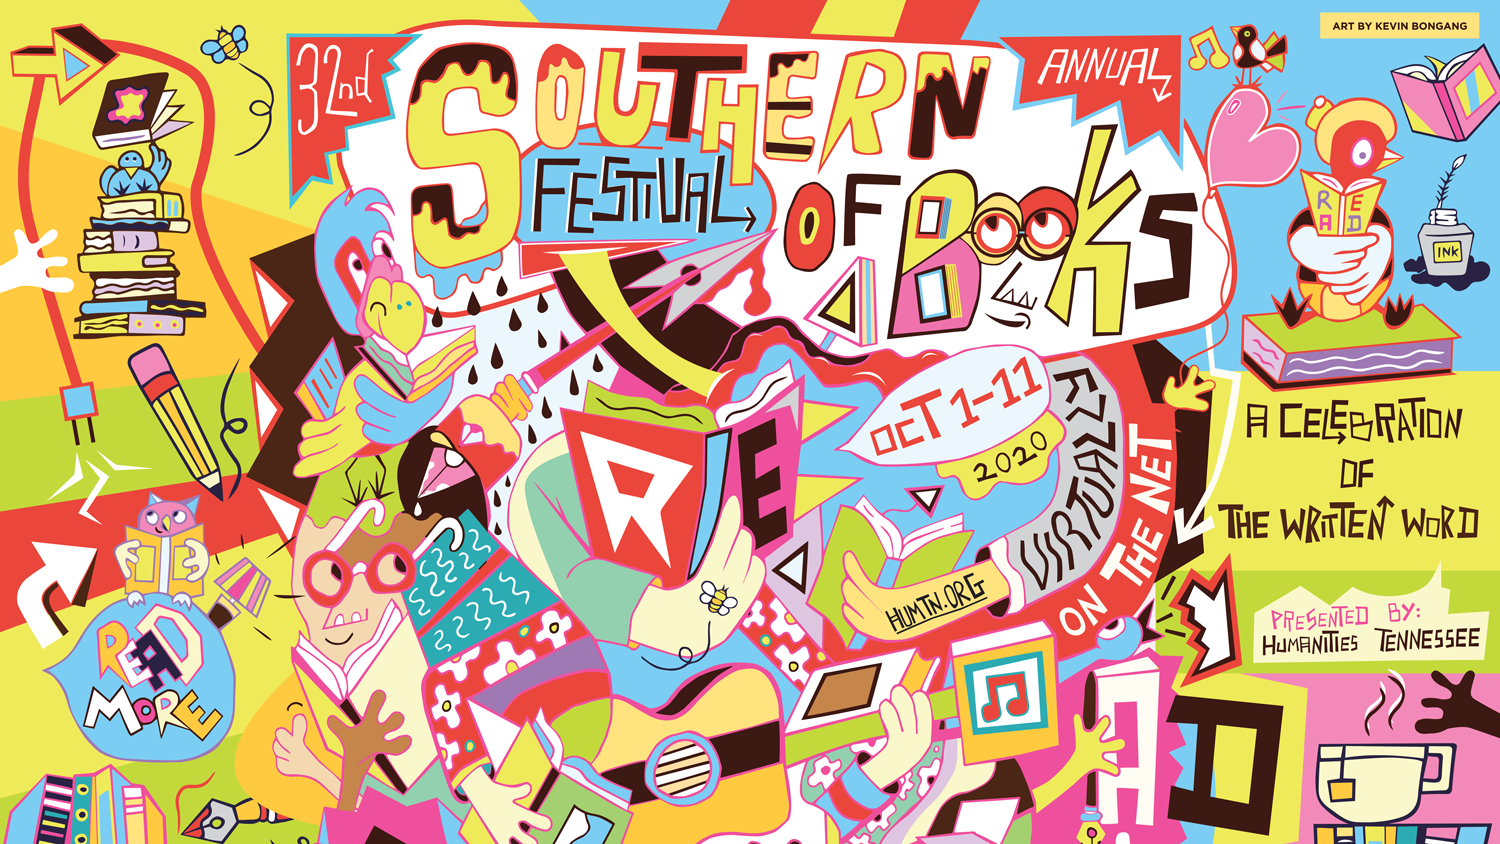 Southern Festival of Books 2020 (Online)